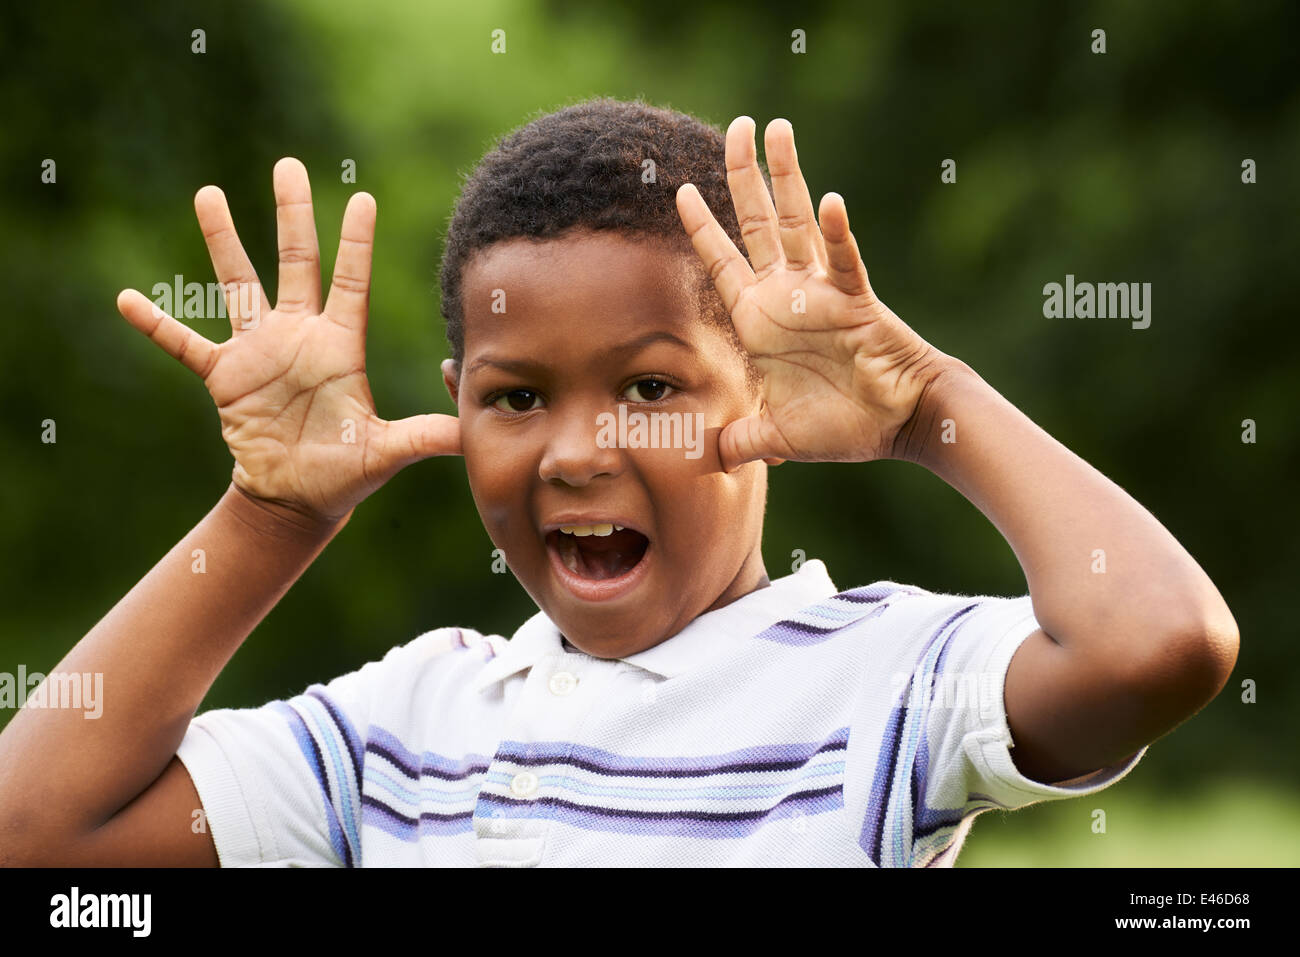 Portrait of happy black child making a face and grimacing at camera outdoors in park - Stock Image